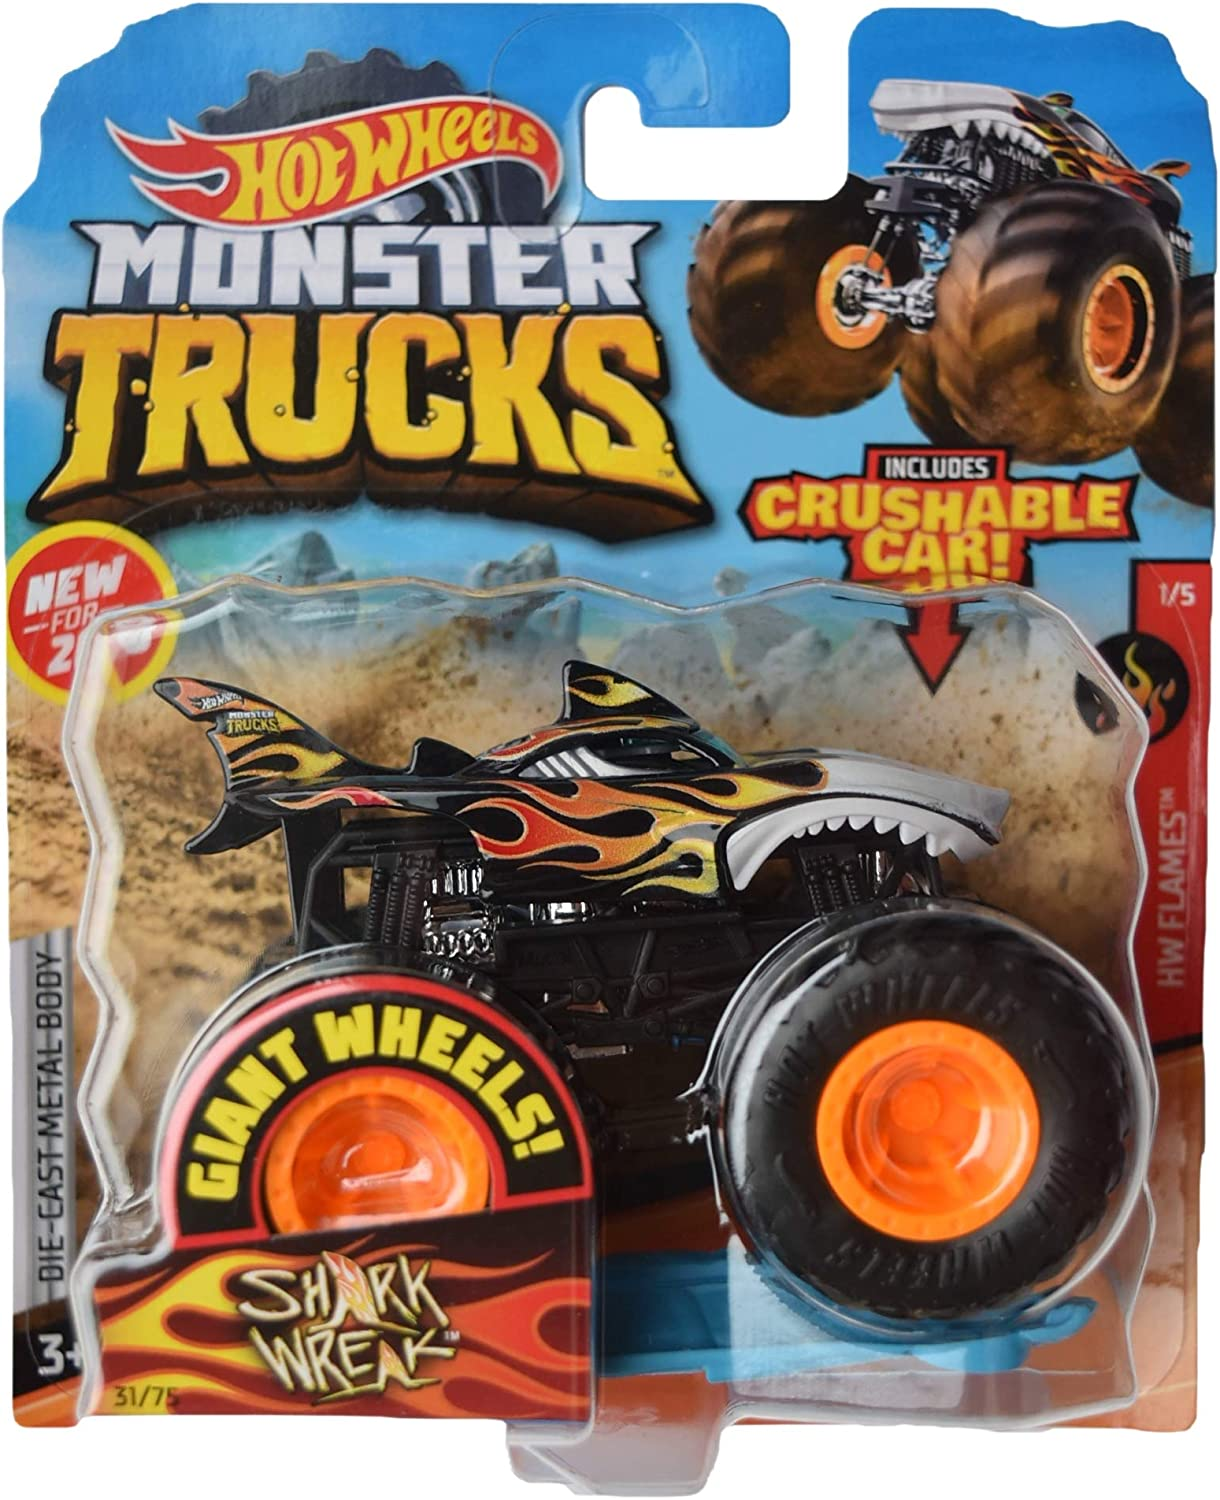 Hot Wheels Monster Trucks 1:64 Scale Shark Wreak 31/75 Includes Crushable Car